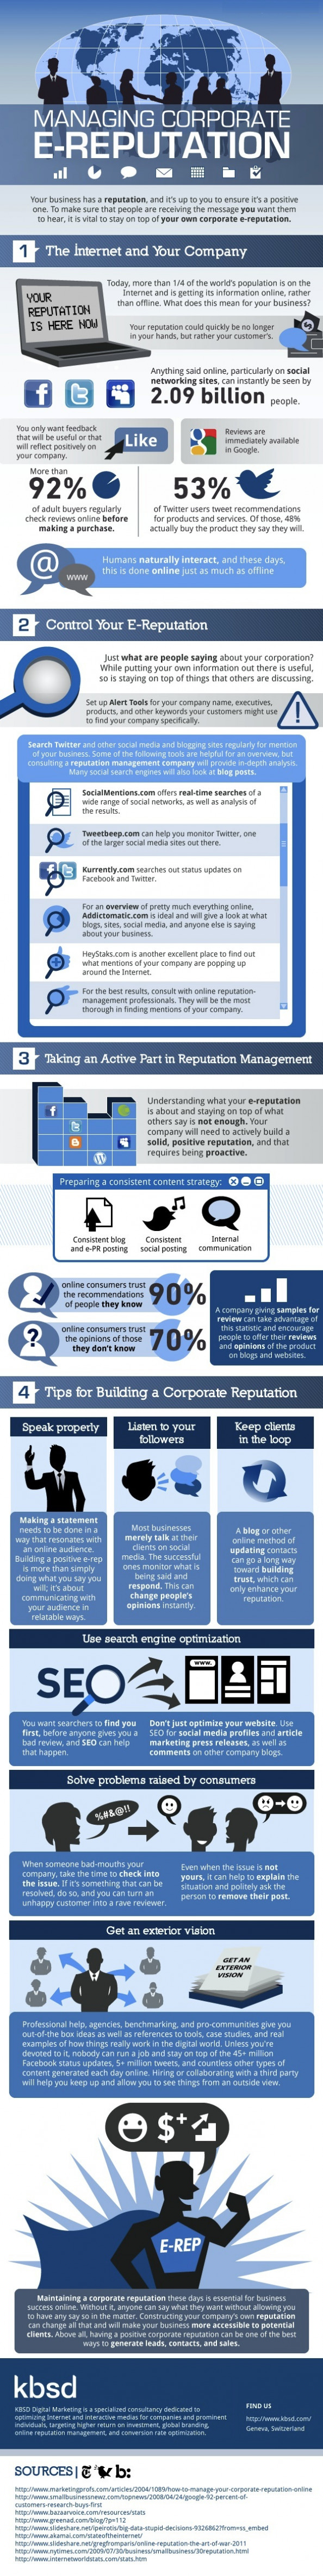 Managing Corporate E-Reputation Infographic